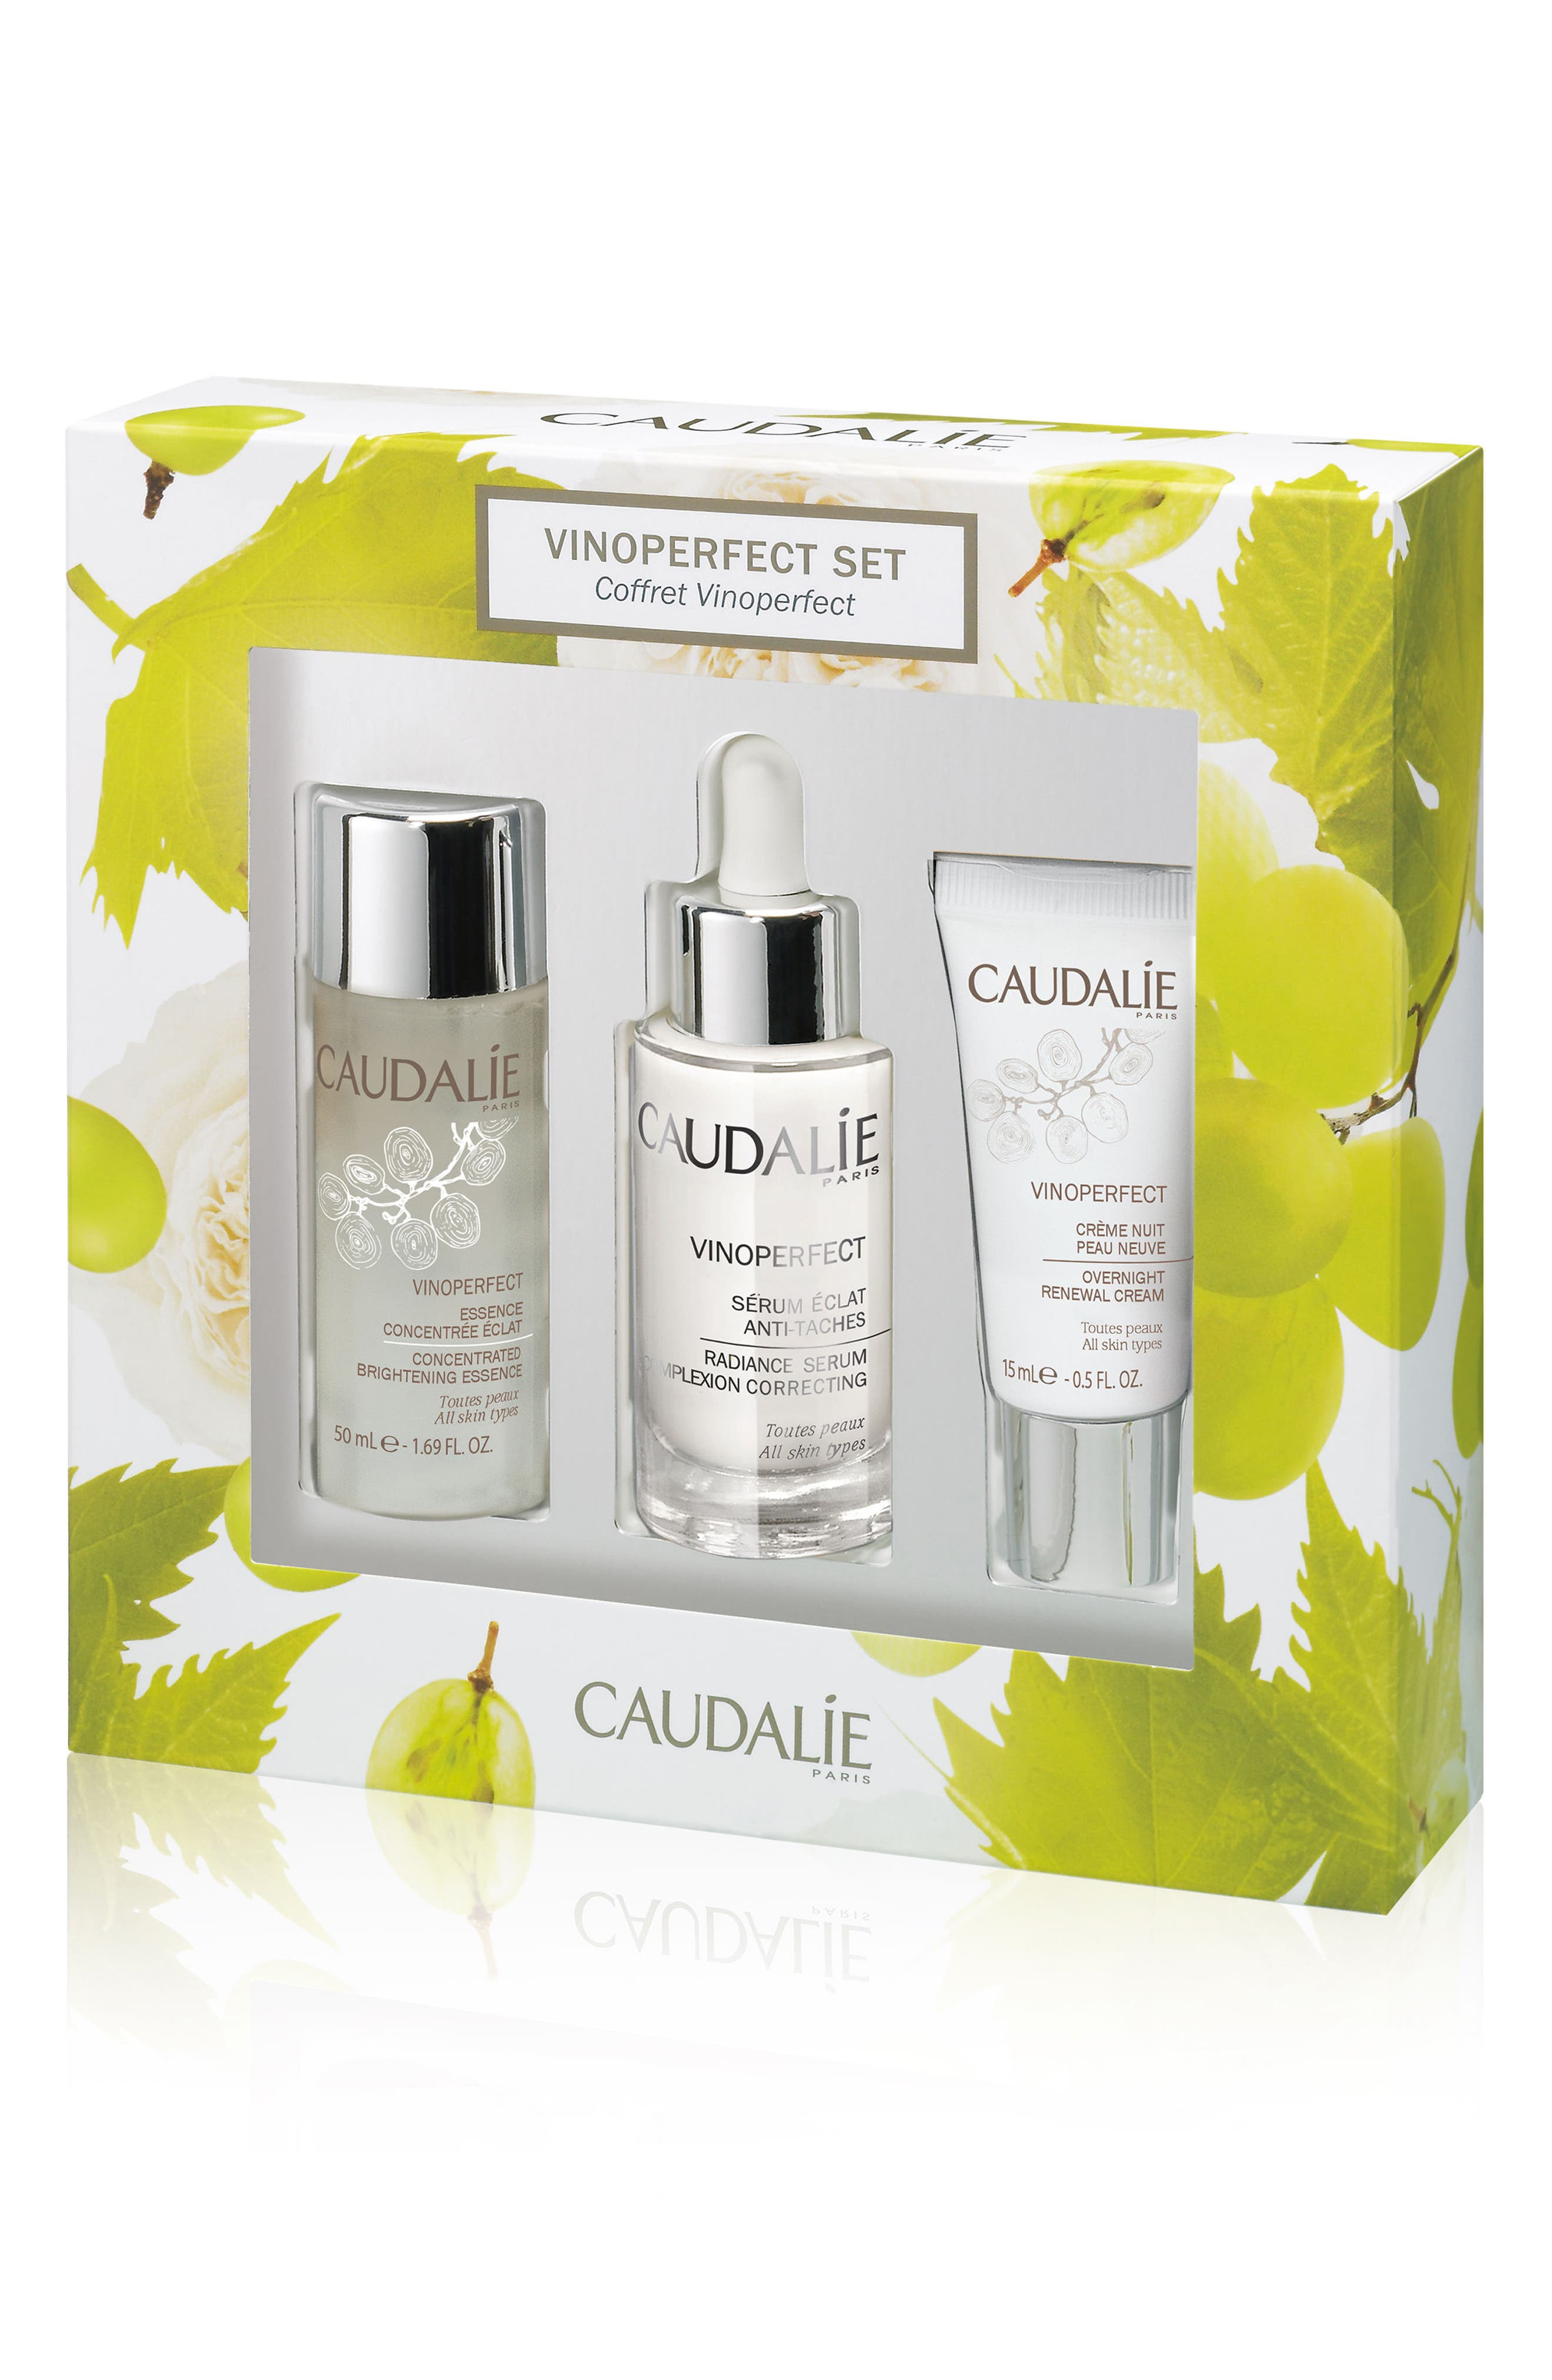 CAUDALÍE Vinoperfect Set ($115 Value)